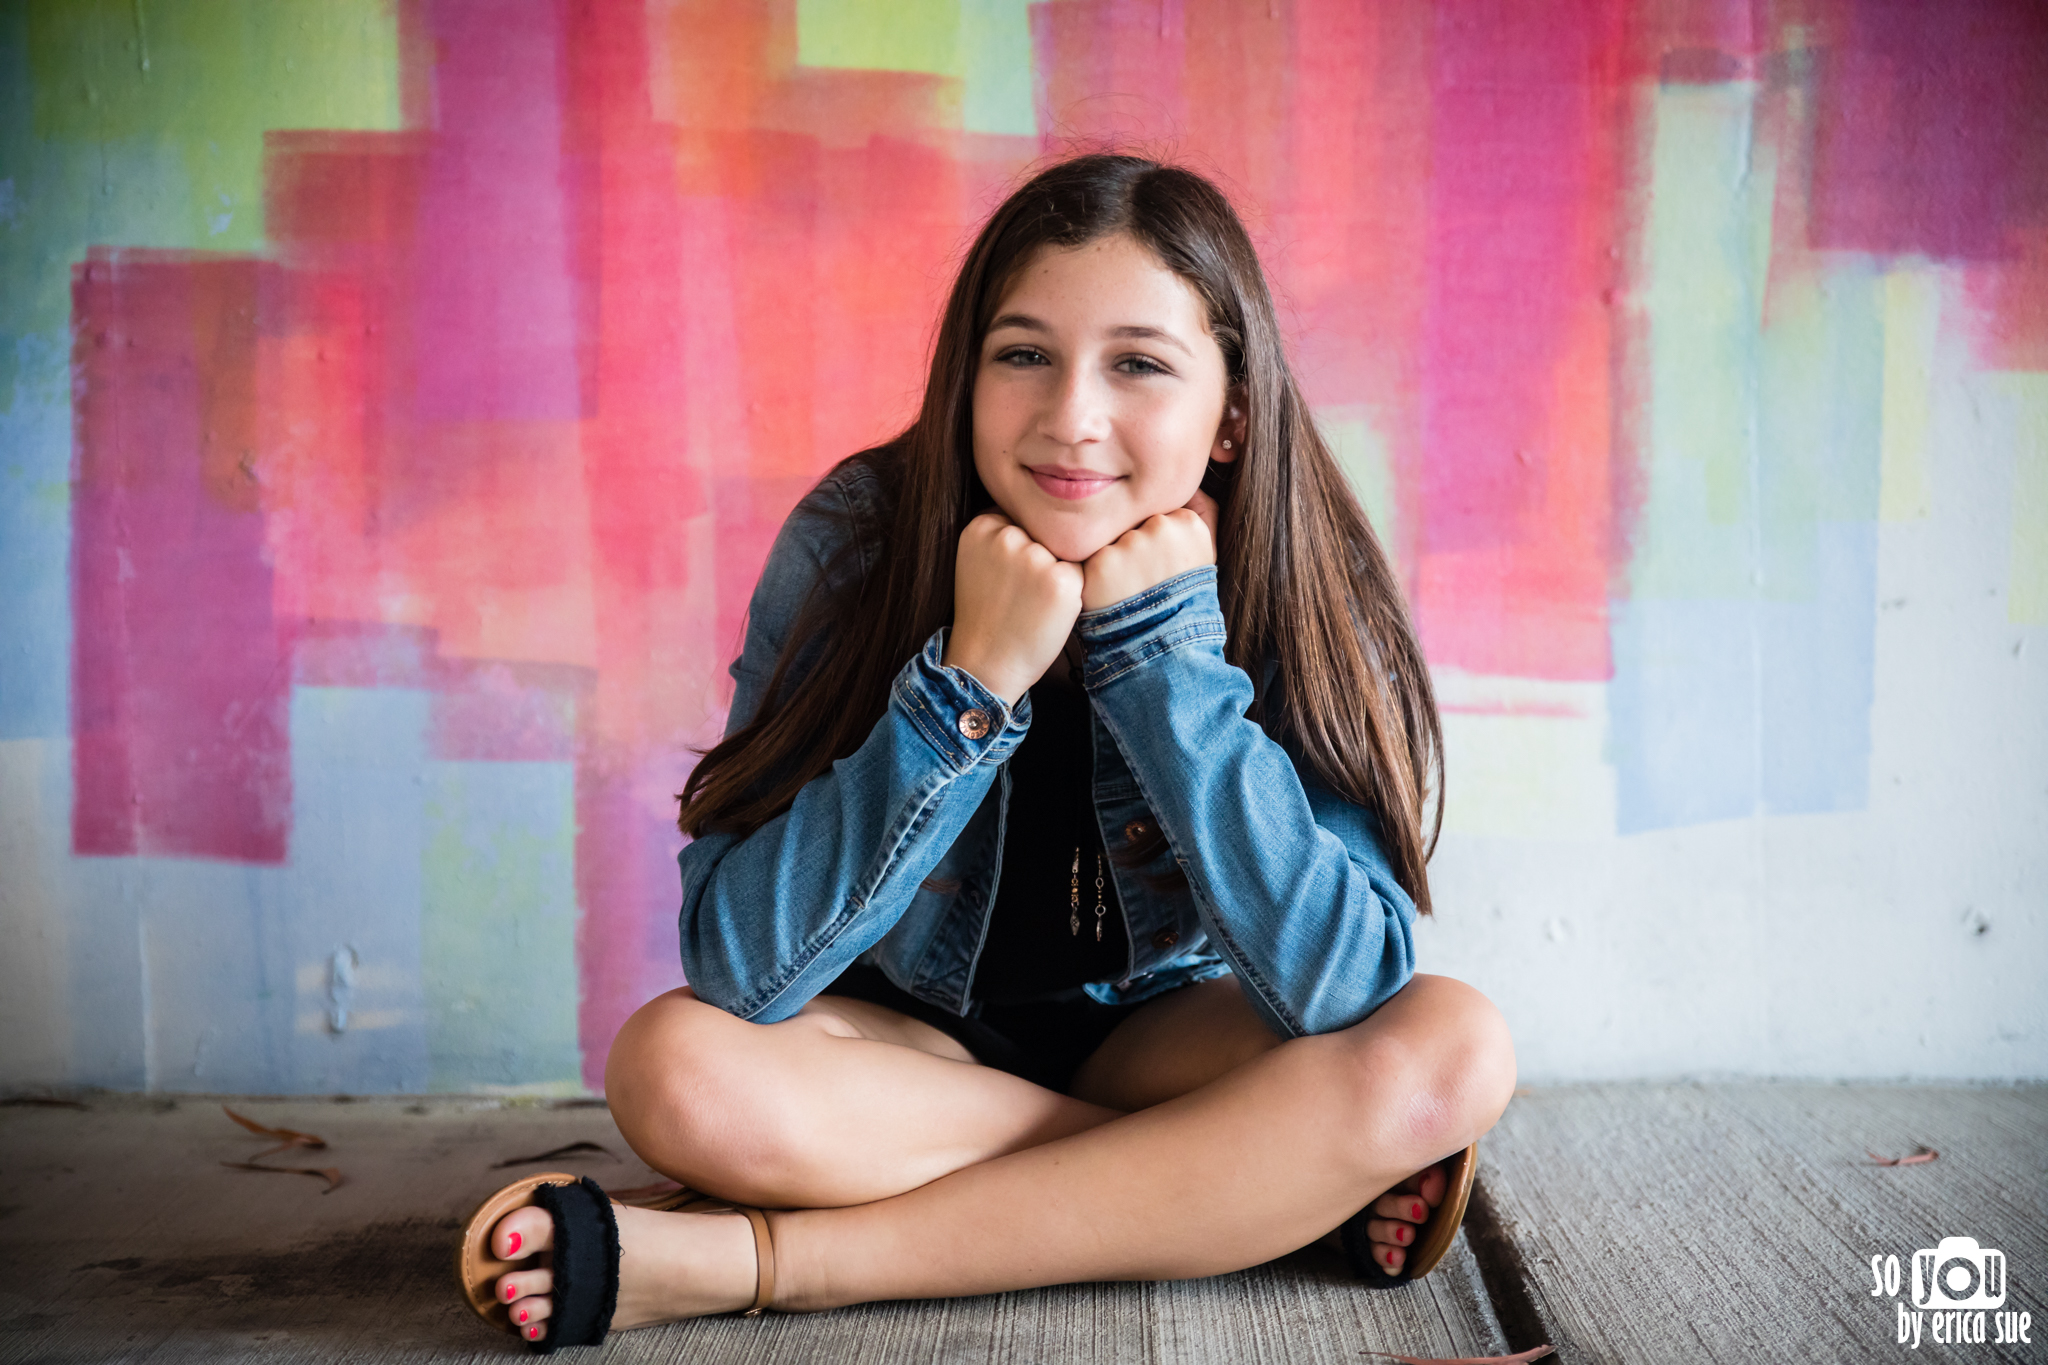 bat-mitzvah-pre-shoot-downtown-ft-lauderdale-teen-so-you-by-erica-sue-3943.jpg